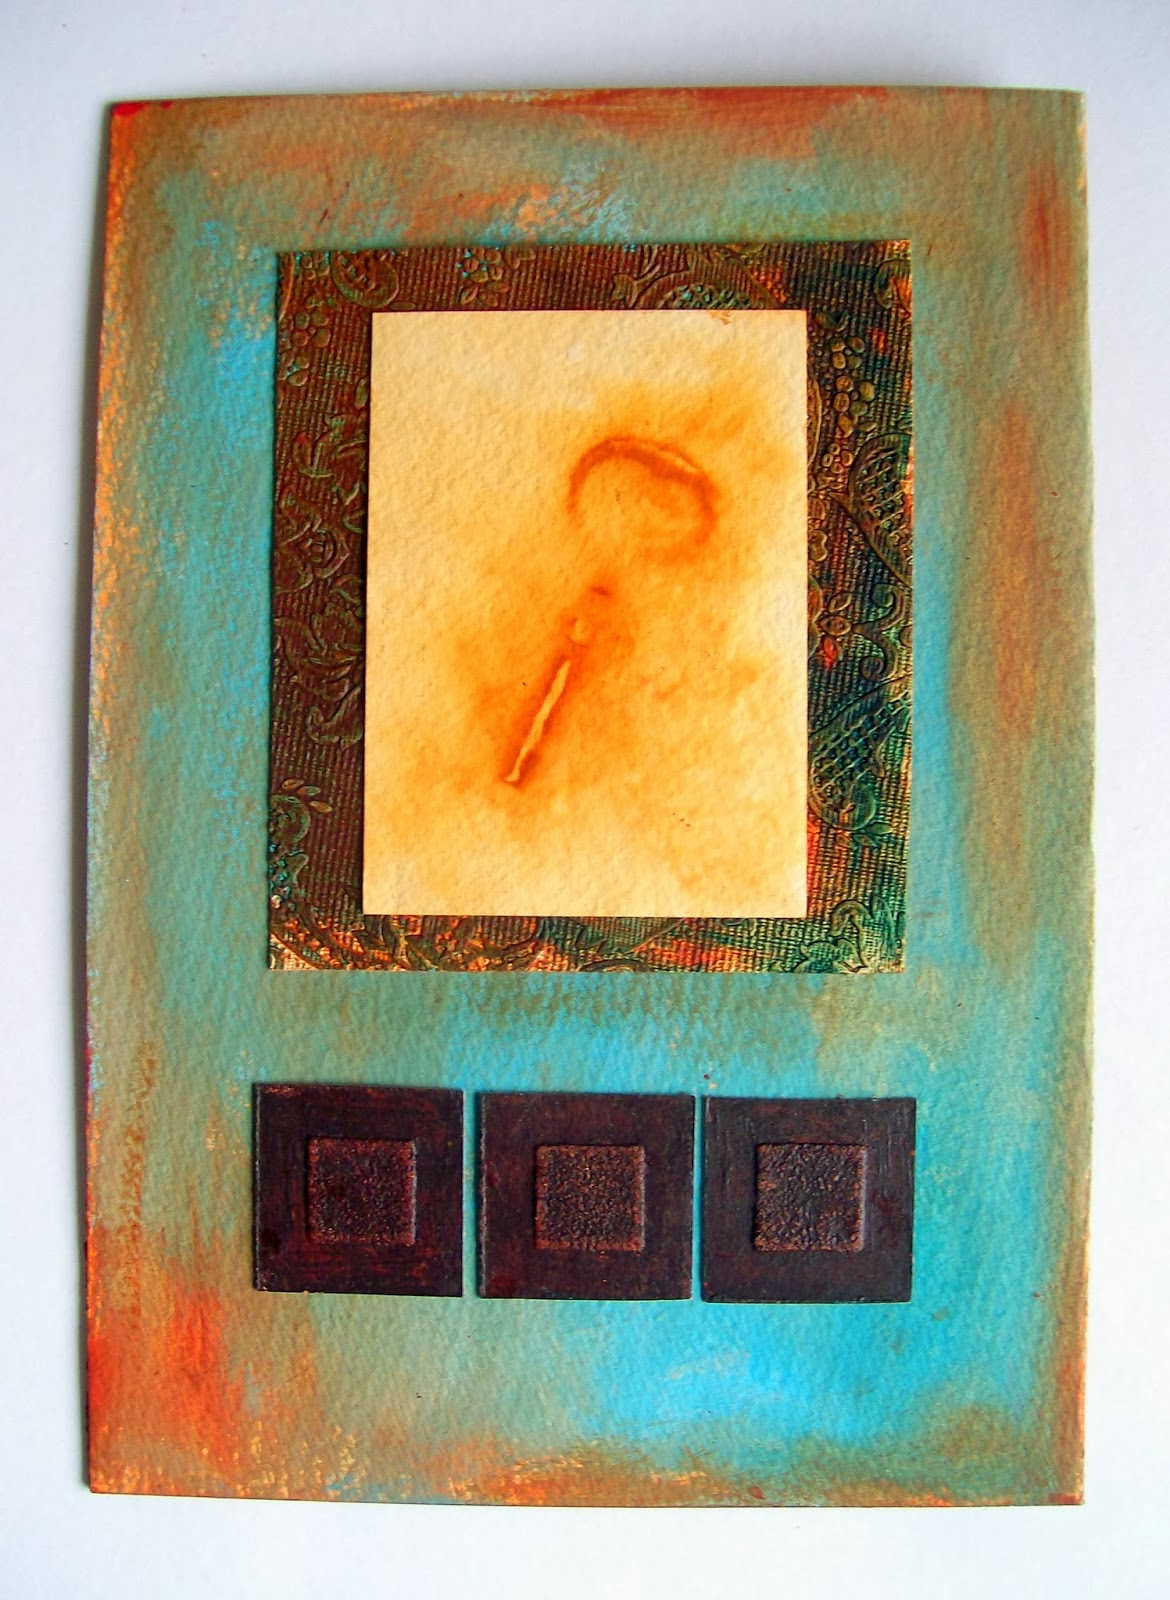 http://artangeloriginalart.blogspot.co.uk/2014/02/mixed-media-art-rust-print-technique.html